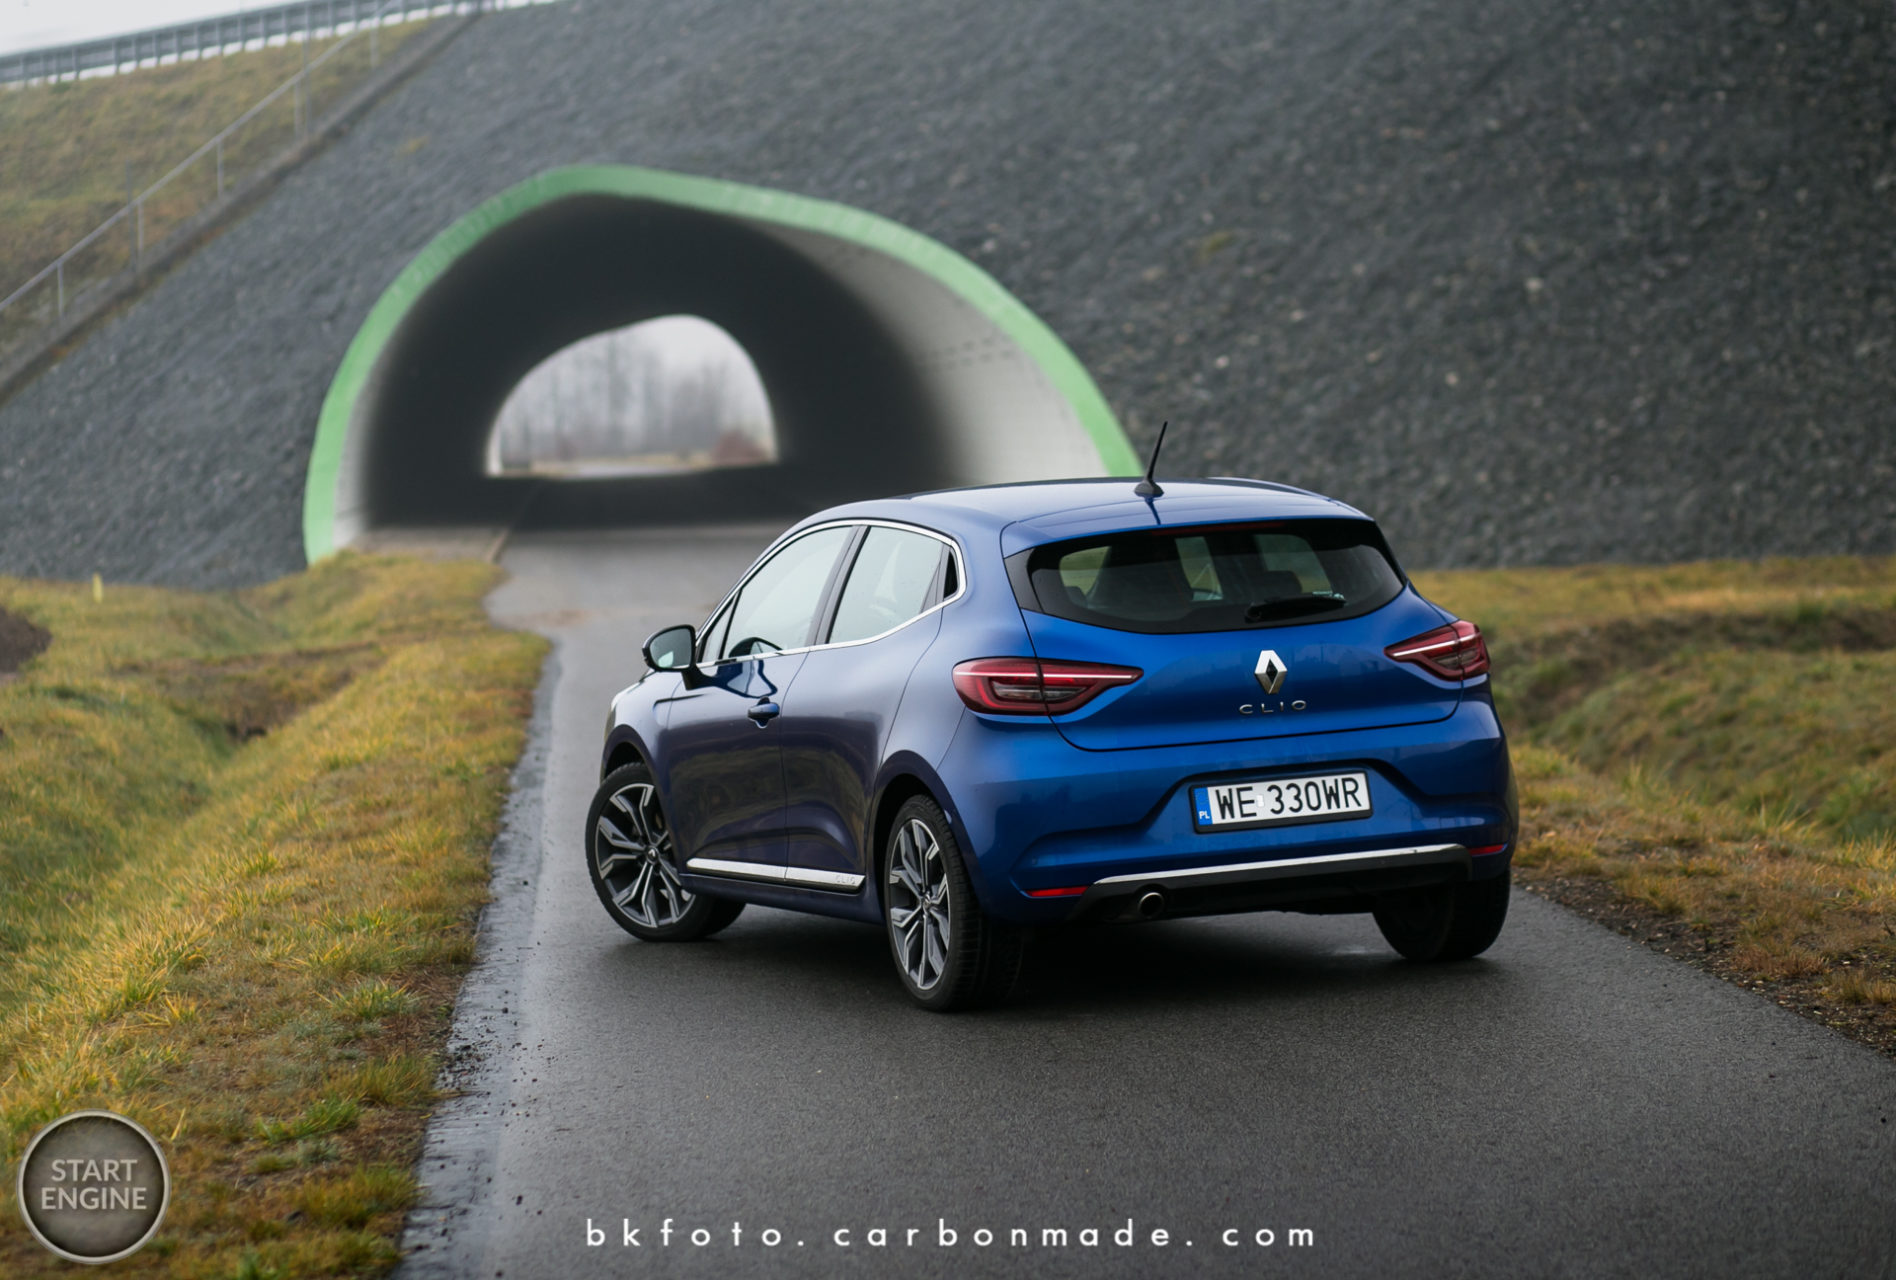 Renault Clio Intens 1.0 TCe 100 KM 5MT